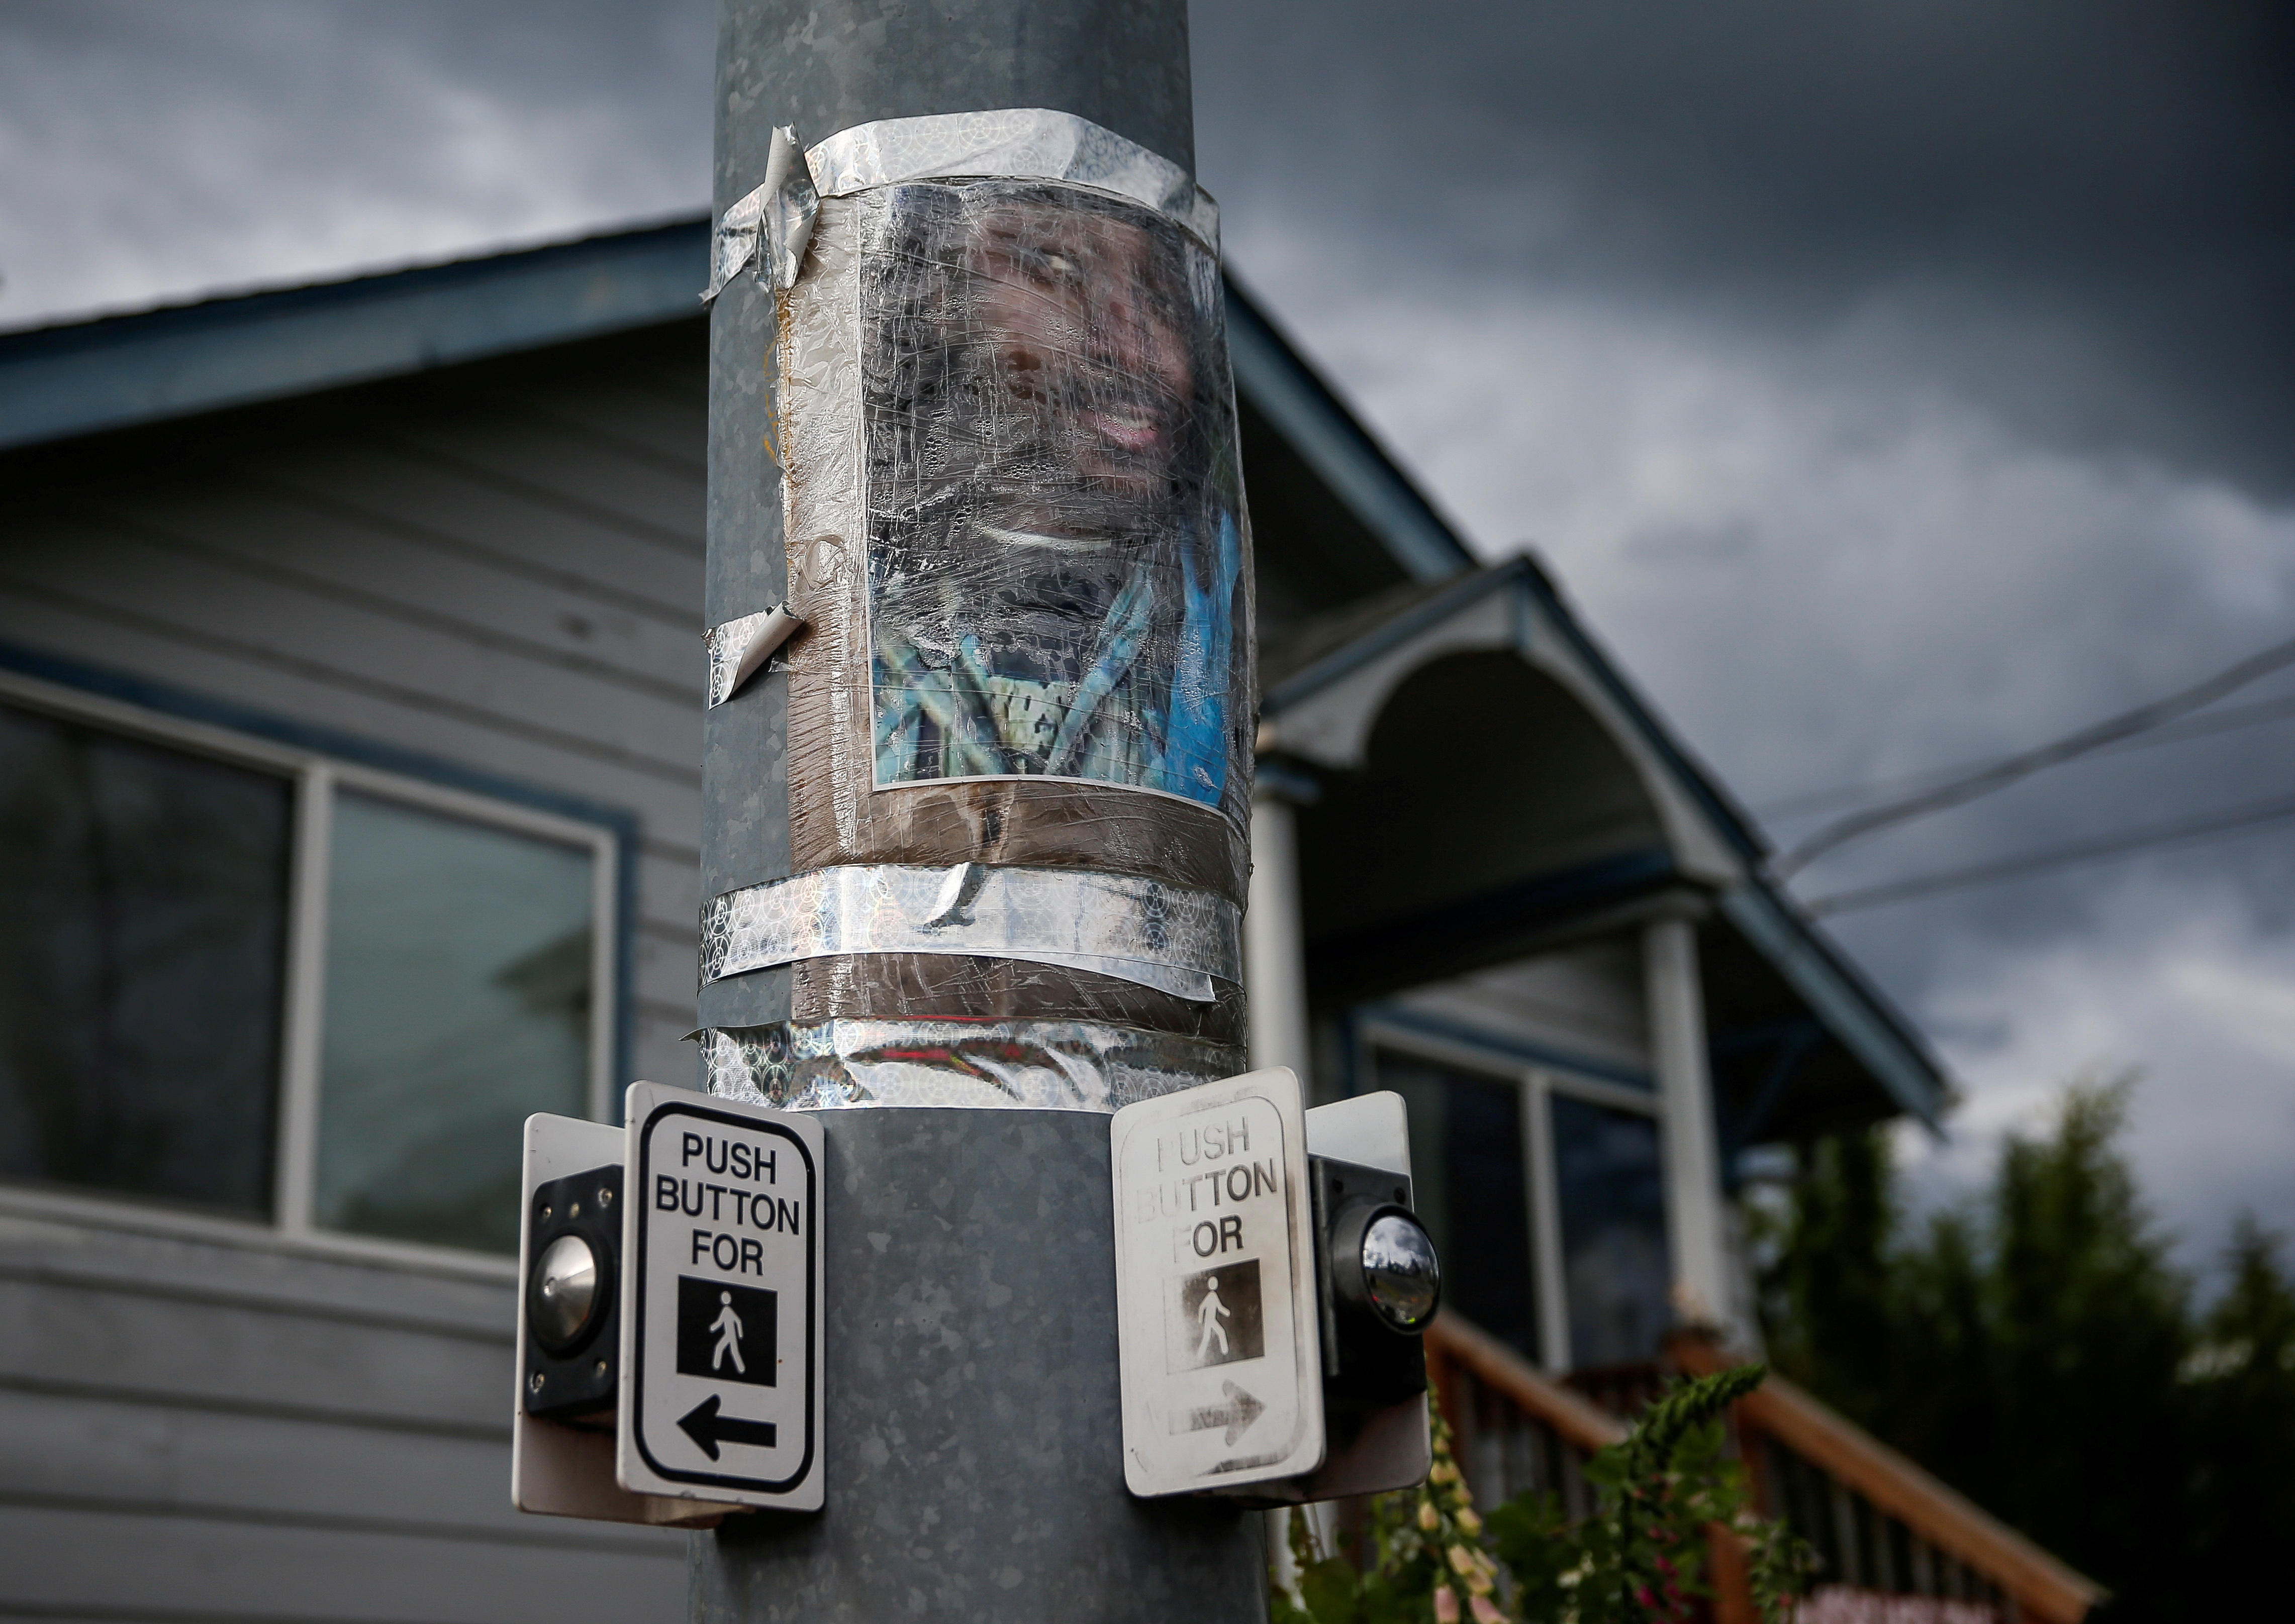 A photo of Manuel Ellis, who died in Tacoma police custody in March, is taped to a pole at a vigil site in Tacoma, Washington, U.S. June 5, 2020. REUTERS/Lindsey Wasson/File Photo